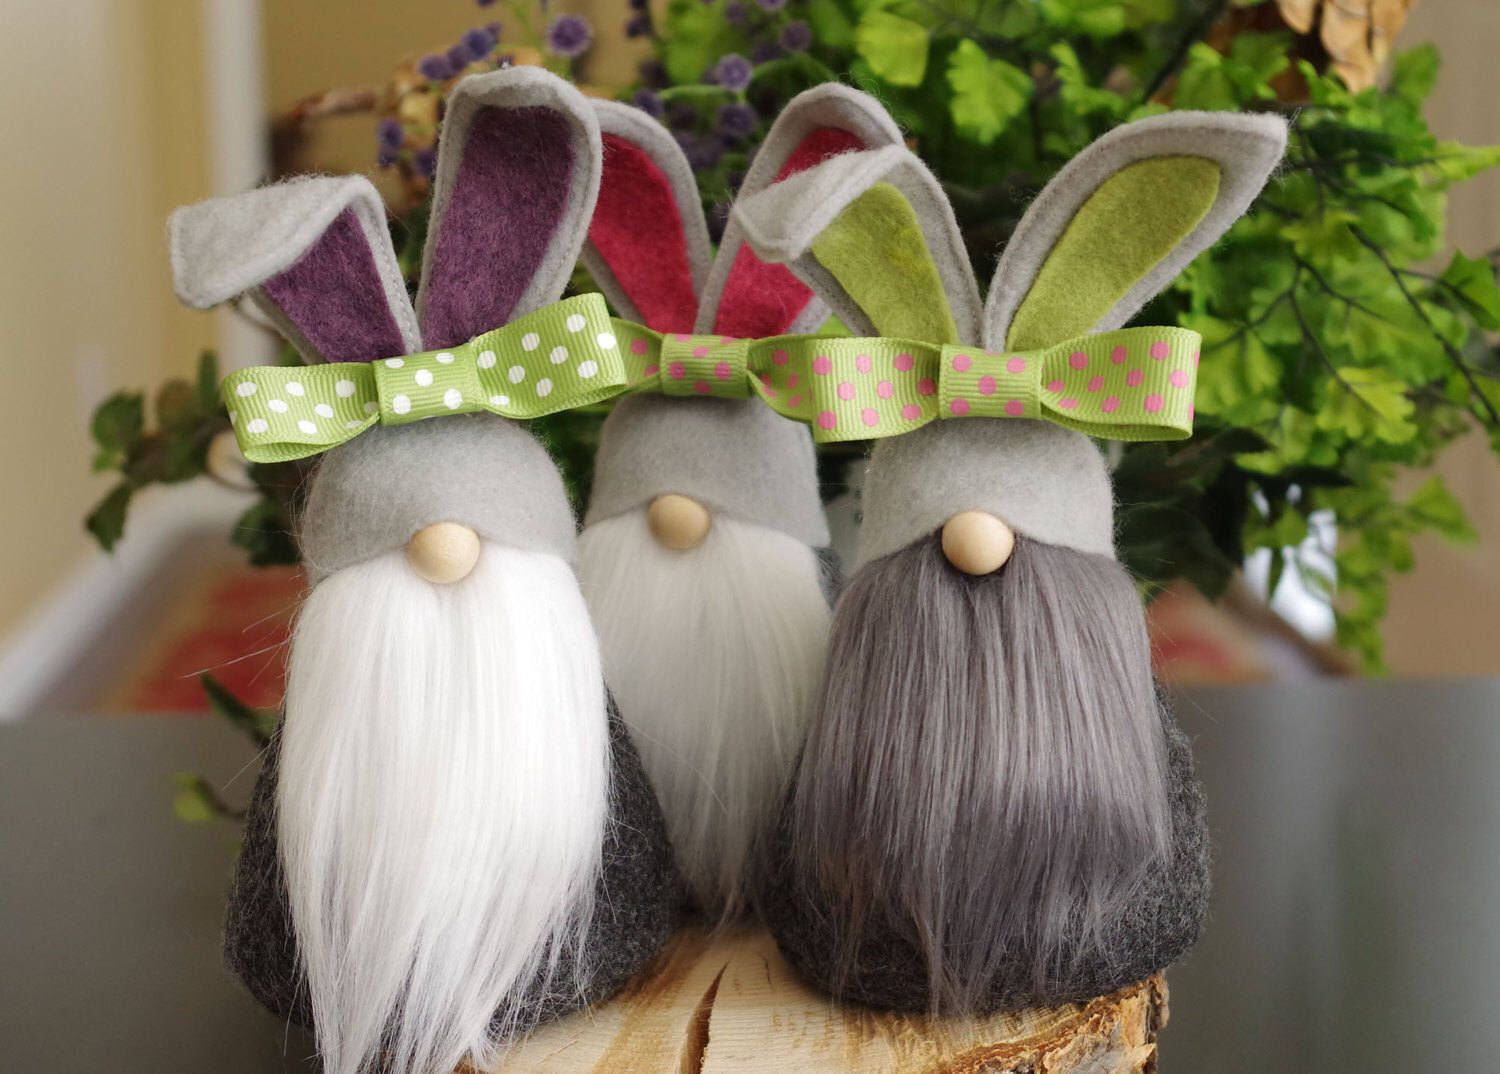 Bunny Gnomes, Hostess Gifts, Nursery, Nordic Gnome, Gifts for Her, Scandinavian Gnomes, Spring, Gnome Gifts, The Gnome Makers by RusticSpoonful on Etsy https://www.etsy.com/listing/502576820/bunny-gnomes-hostess-gifts-nursery